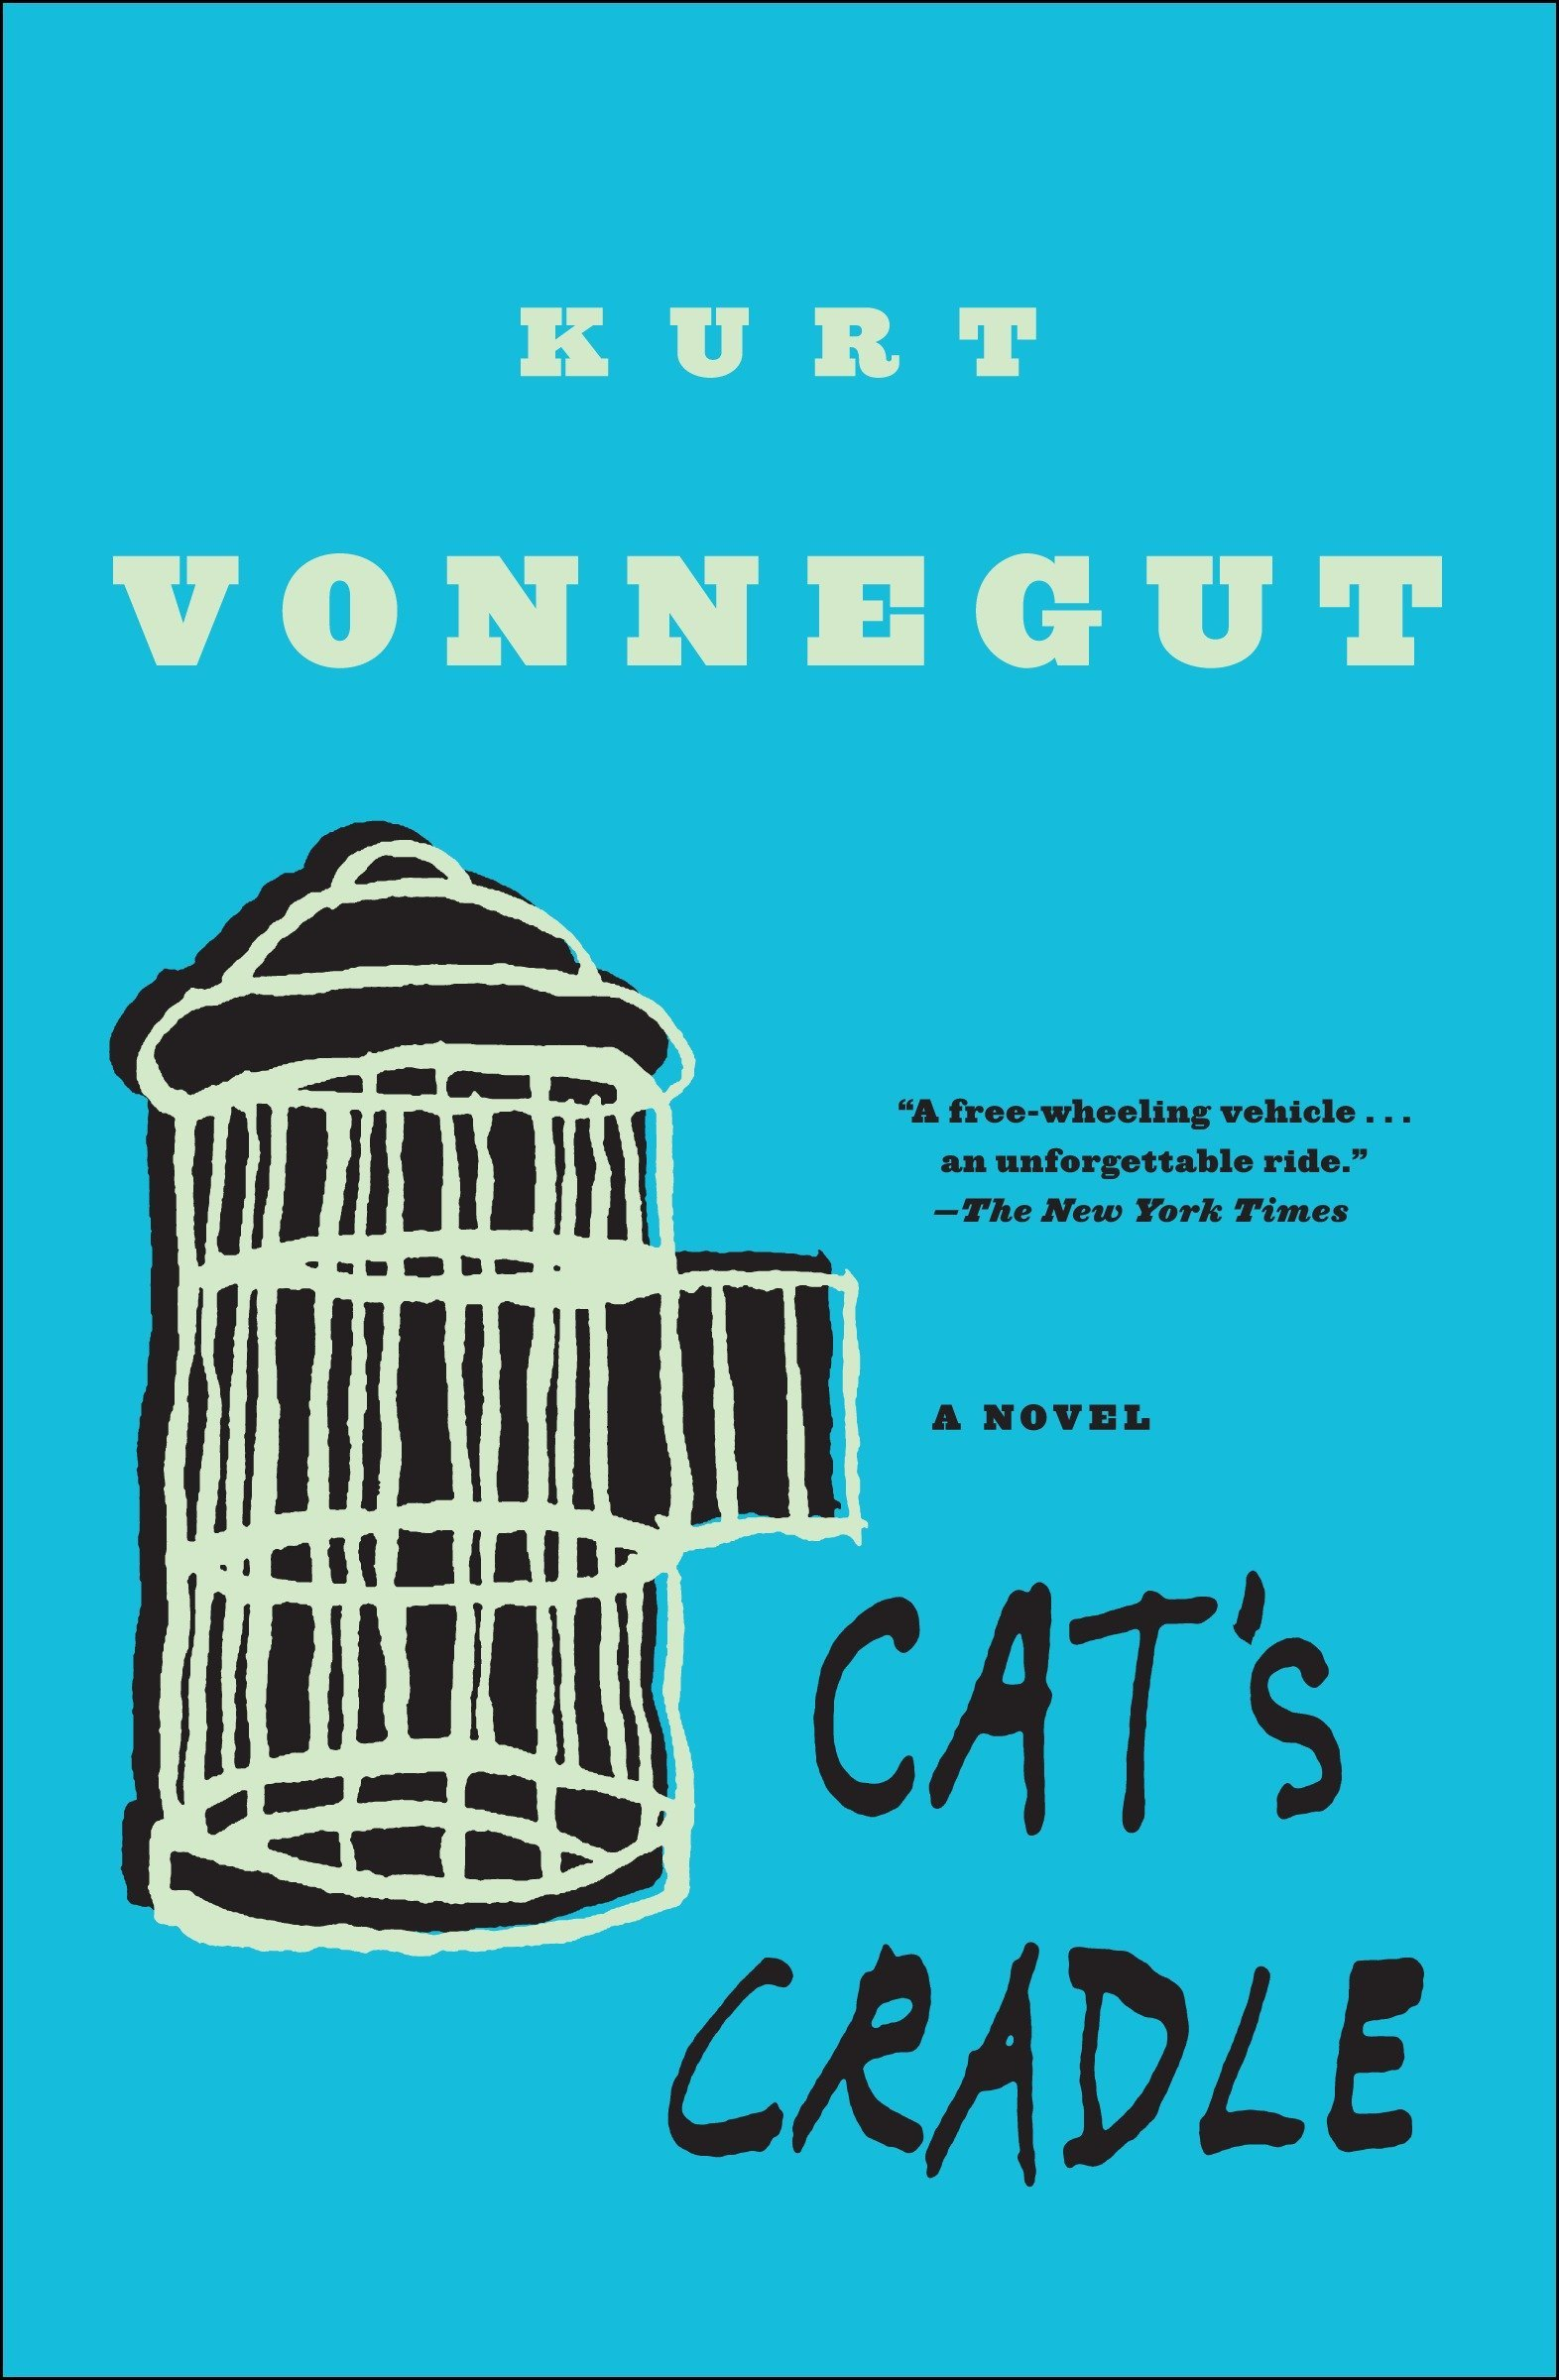 Cat's Cradle: A Novel: Kurt Vonnegut: 8601400575338: Amazon.com: Books